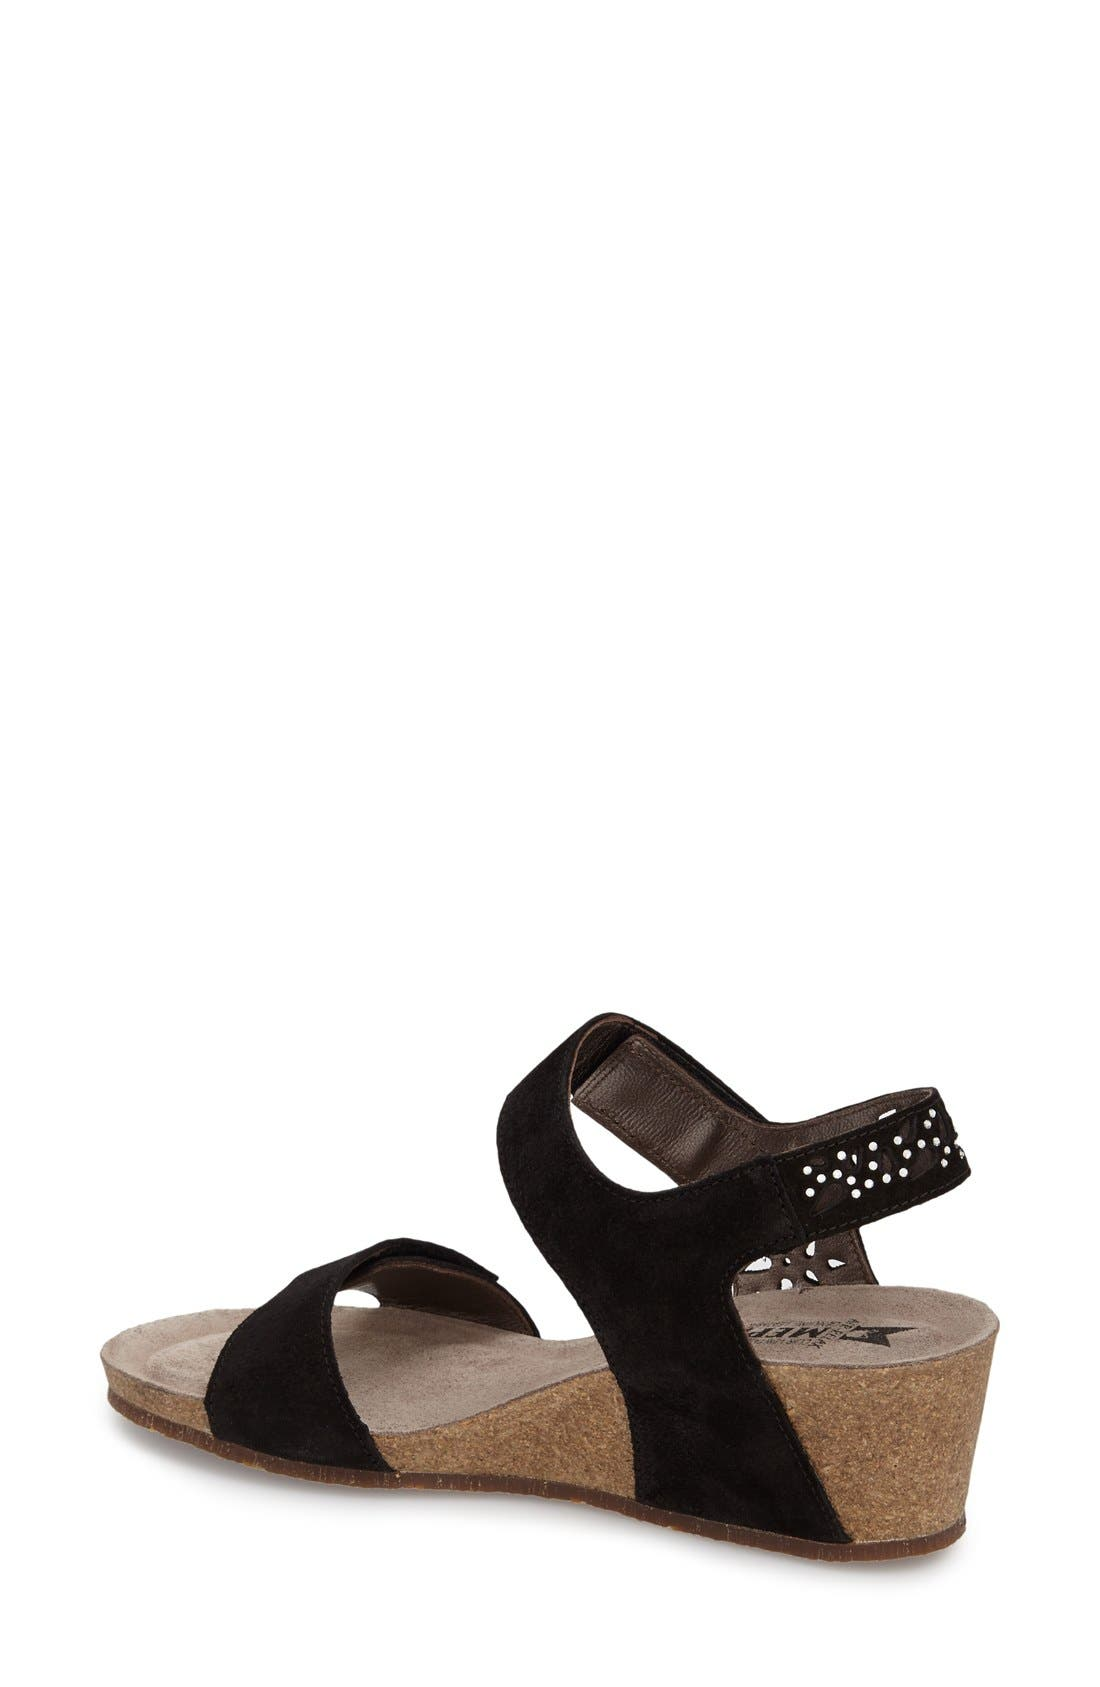 'Marie - Spark' Wedge Sandal,                             Alternate thumbnail 2, color,                             BLACK SUEDE